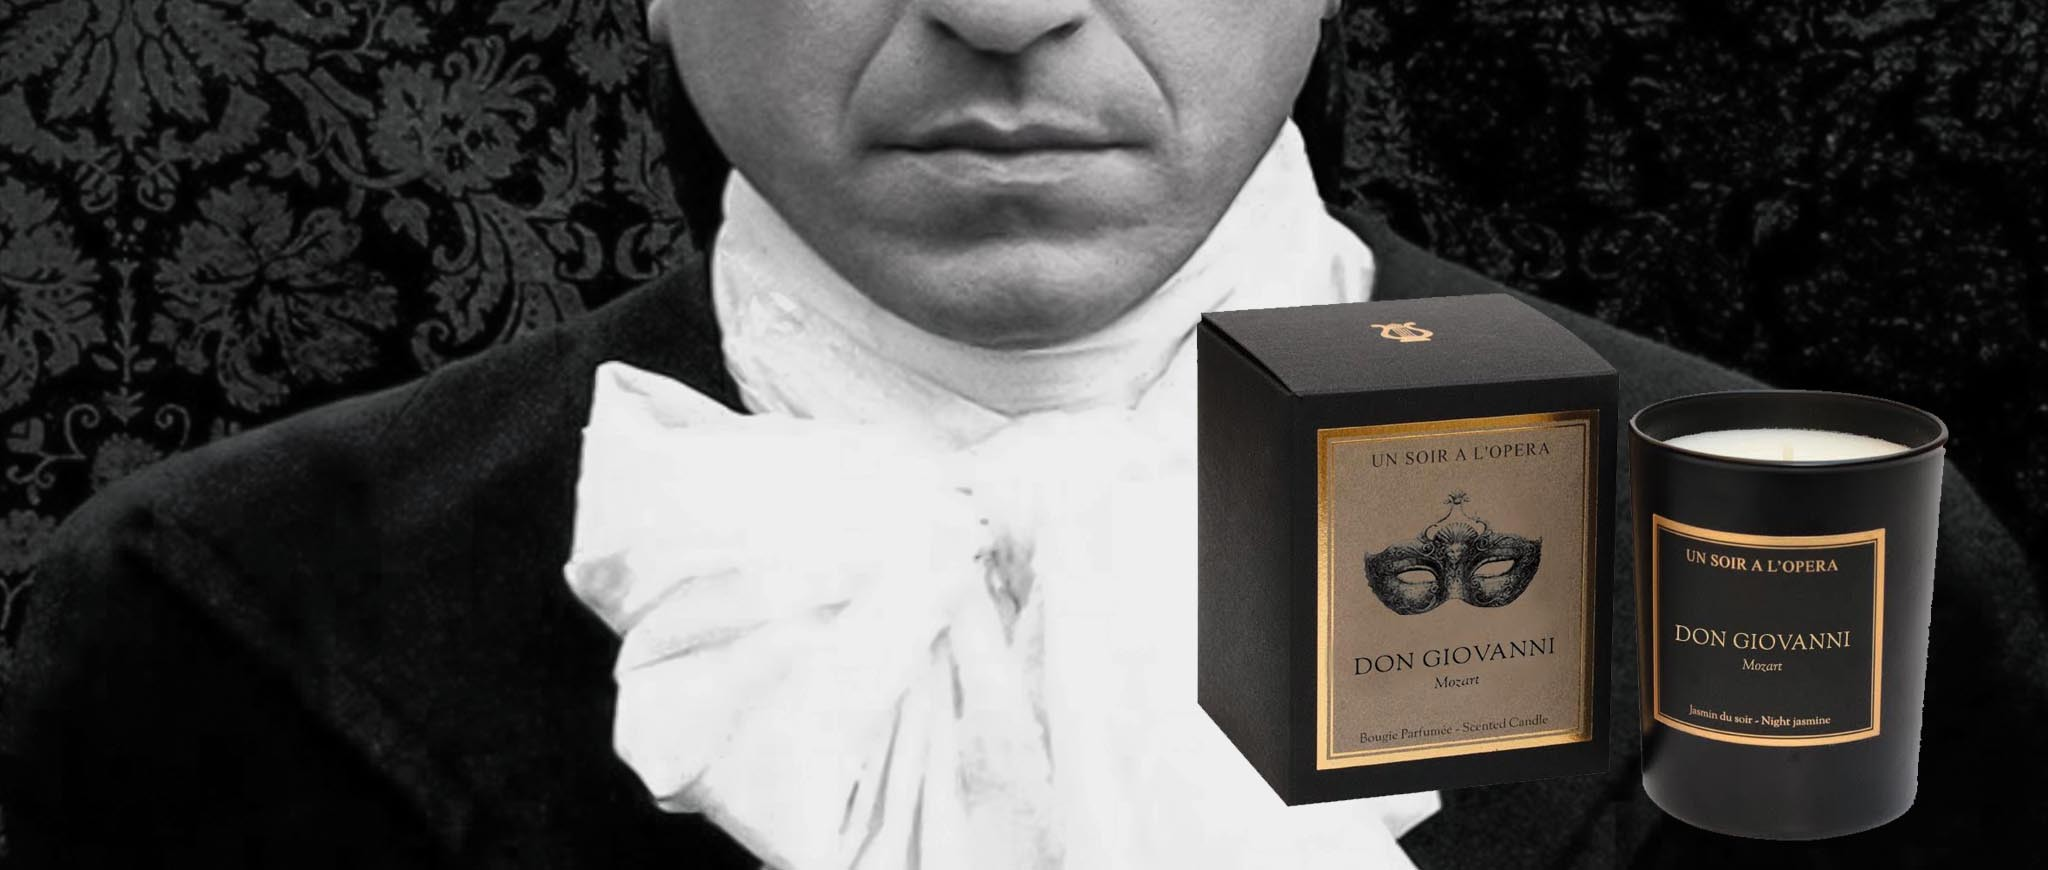 DON GIOVANNI - Incense from Venice